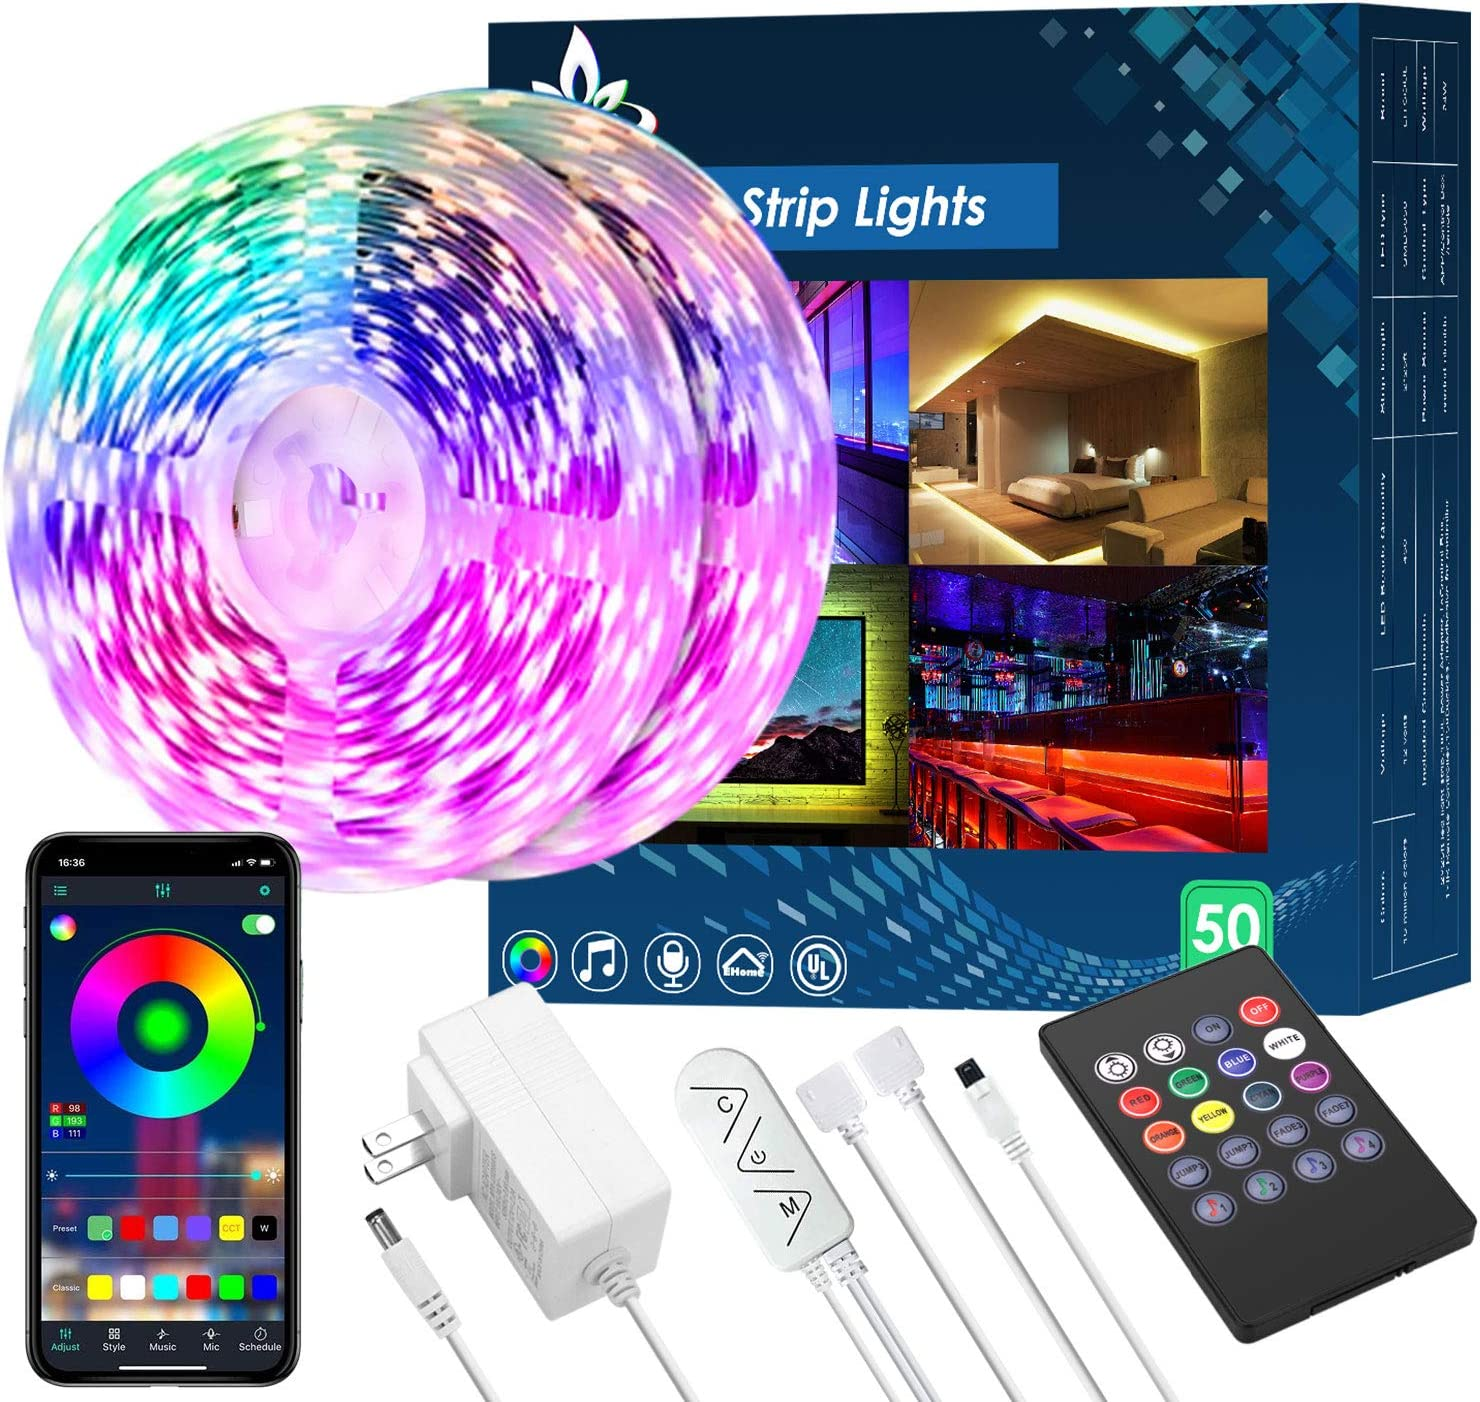 50FT LED Strip Lights,Music Sync LED lights for Bedroom Home Party Decor,RGB Color Changing Rope Light with Remote,Sensitive Built-in Mic App Controlled 12v Ultra Bright,APP+Remote+Mic+3-Button Switch